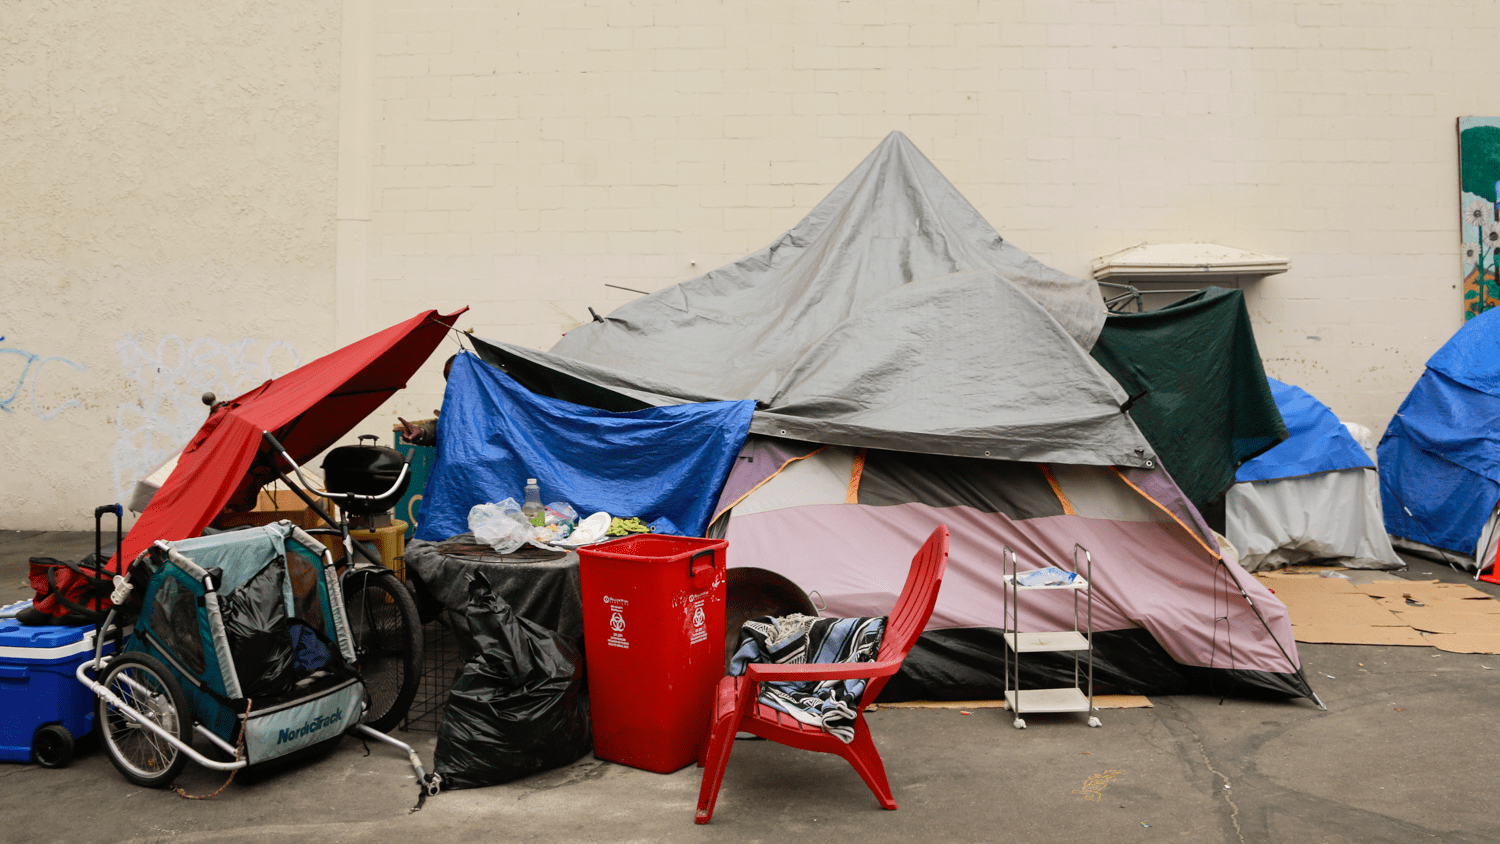 Costa Mesa Officials Approve $2M Annual Contract For Shelter, Other Cities Rethink Homelessness Response